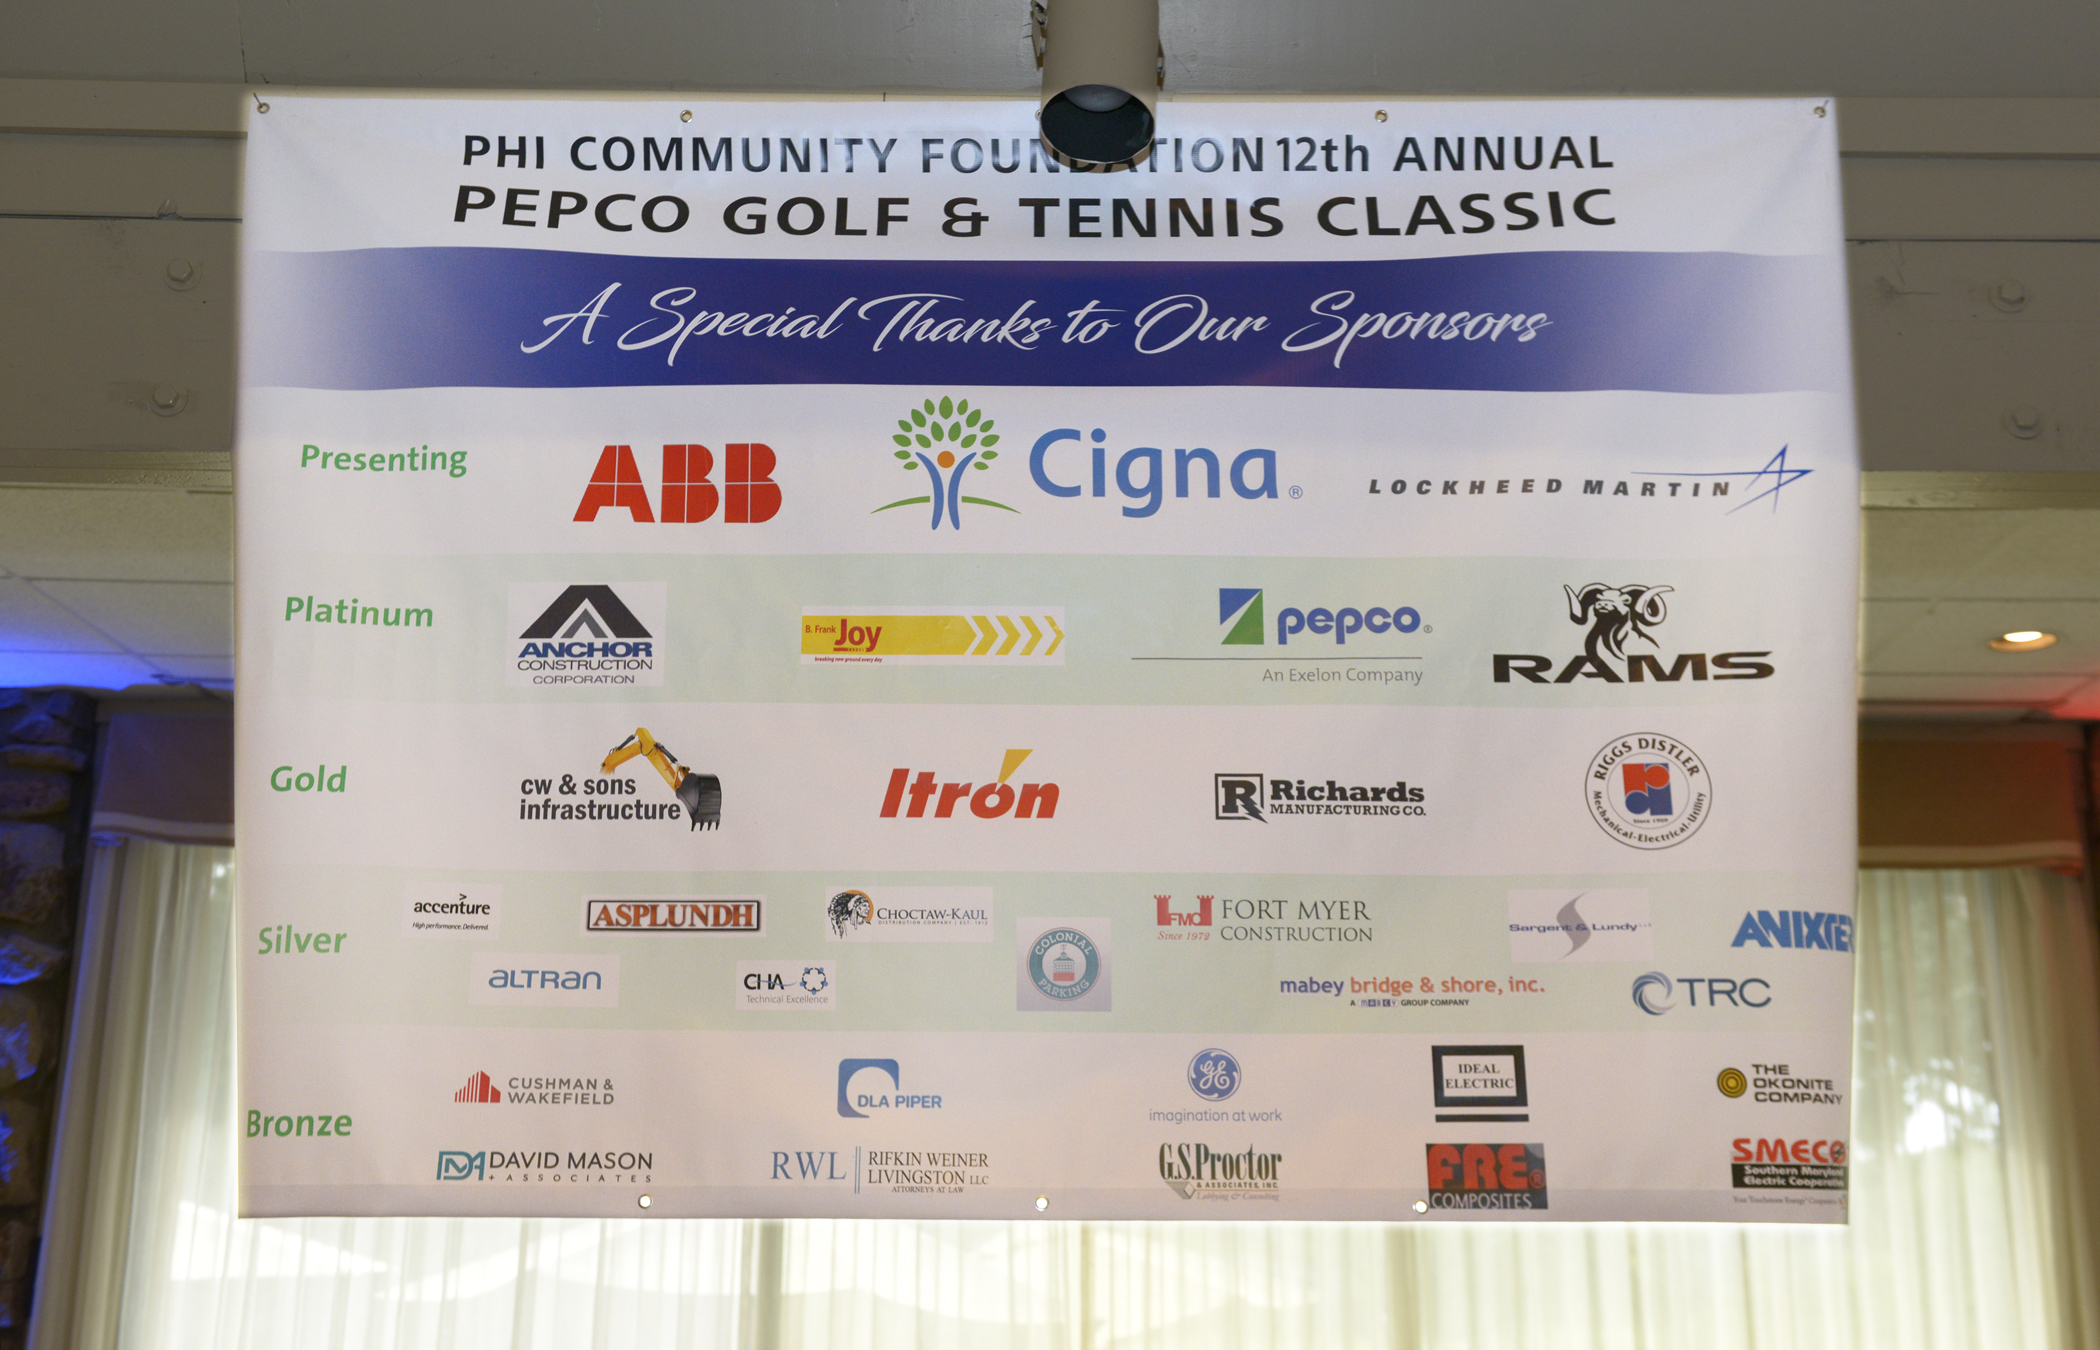 Sponsors of the Pepco Golf & Tennis Classic banner